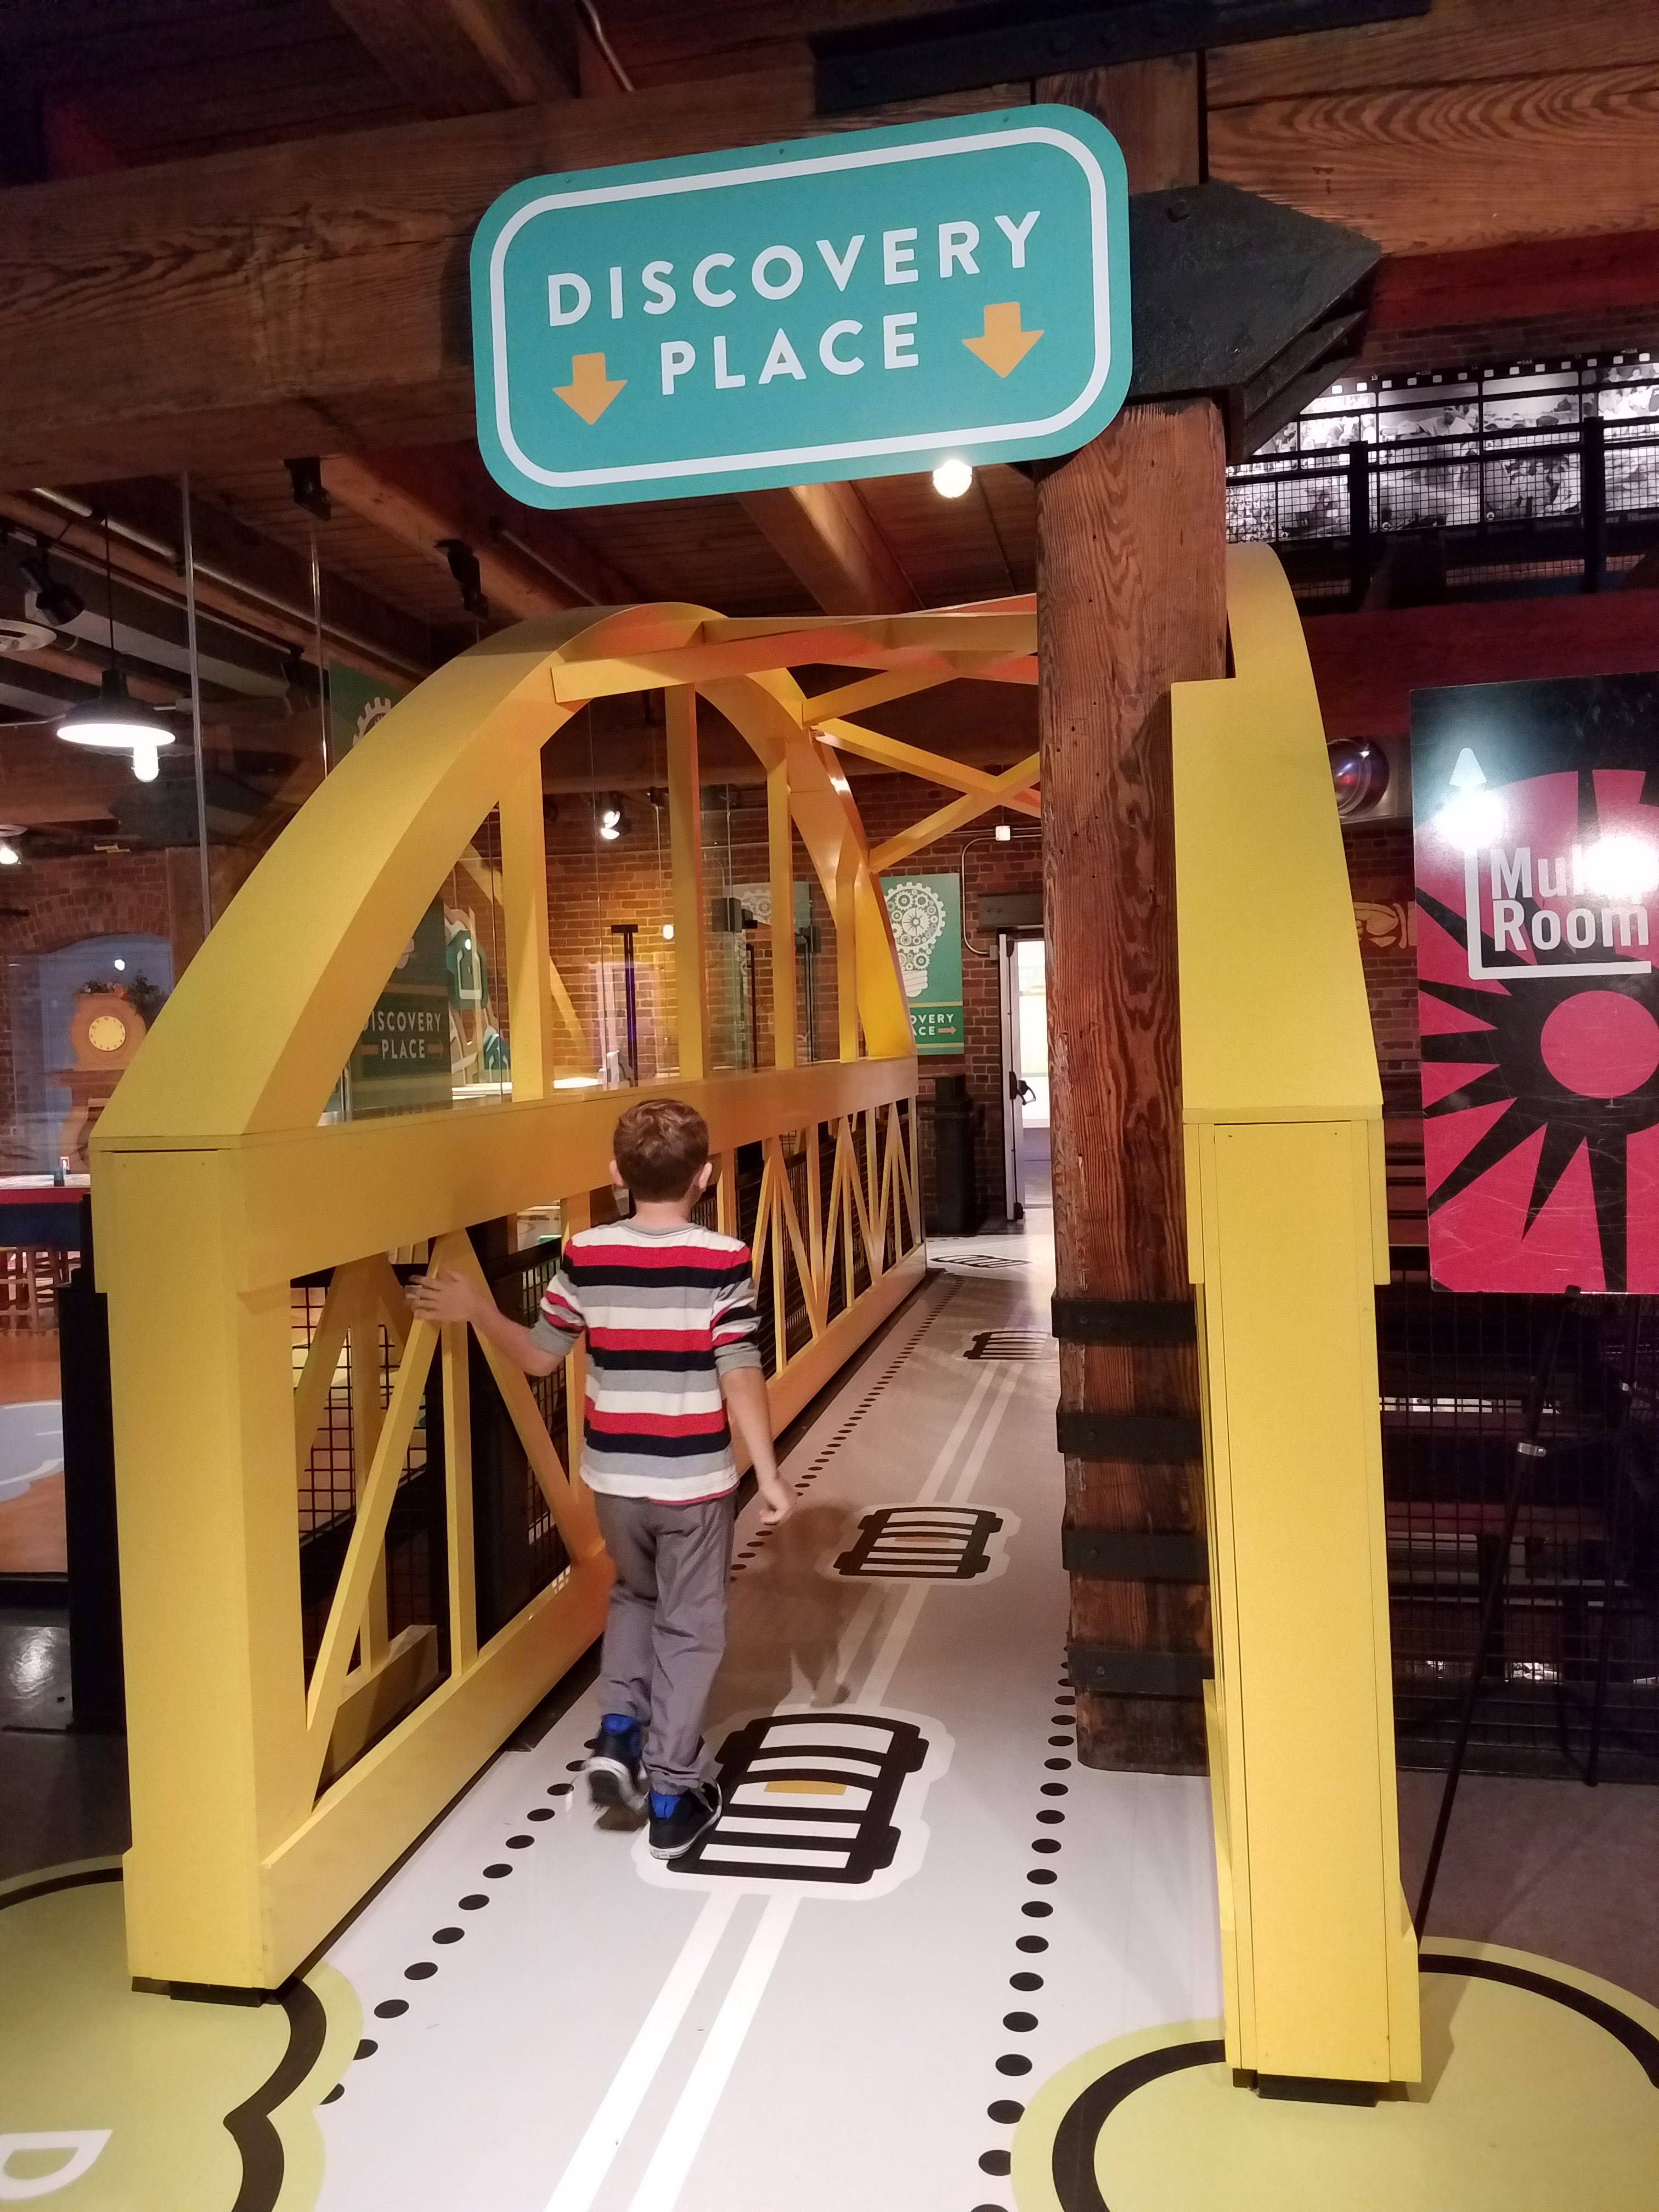 Discovery Place in the Heinz Center of Pittsburgh